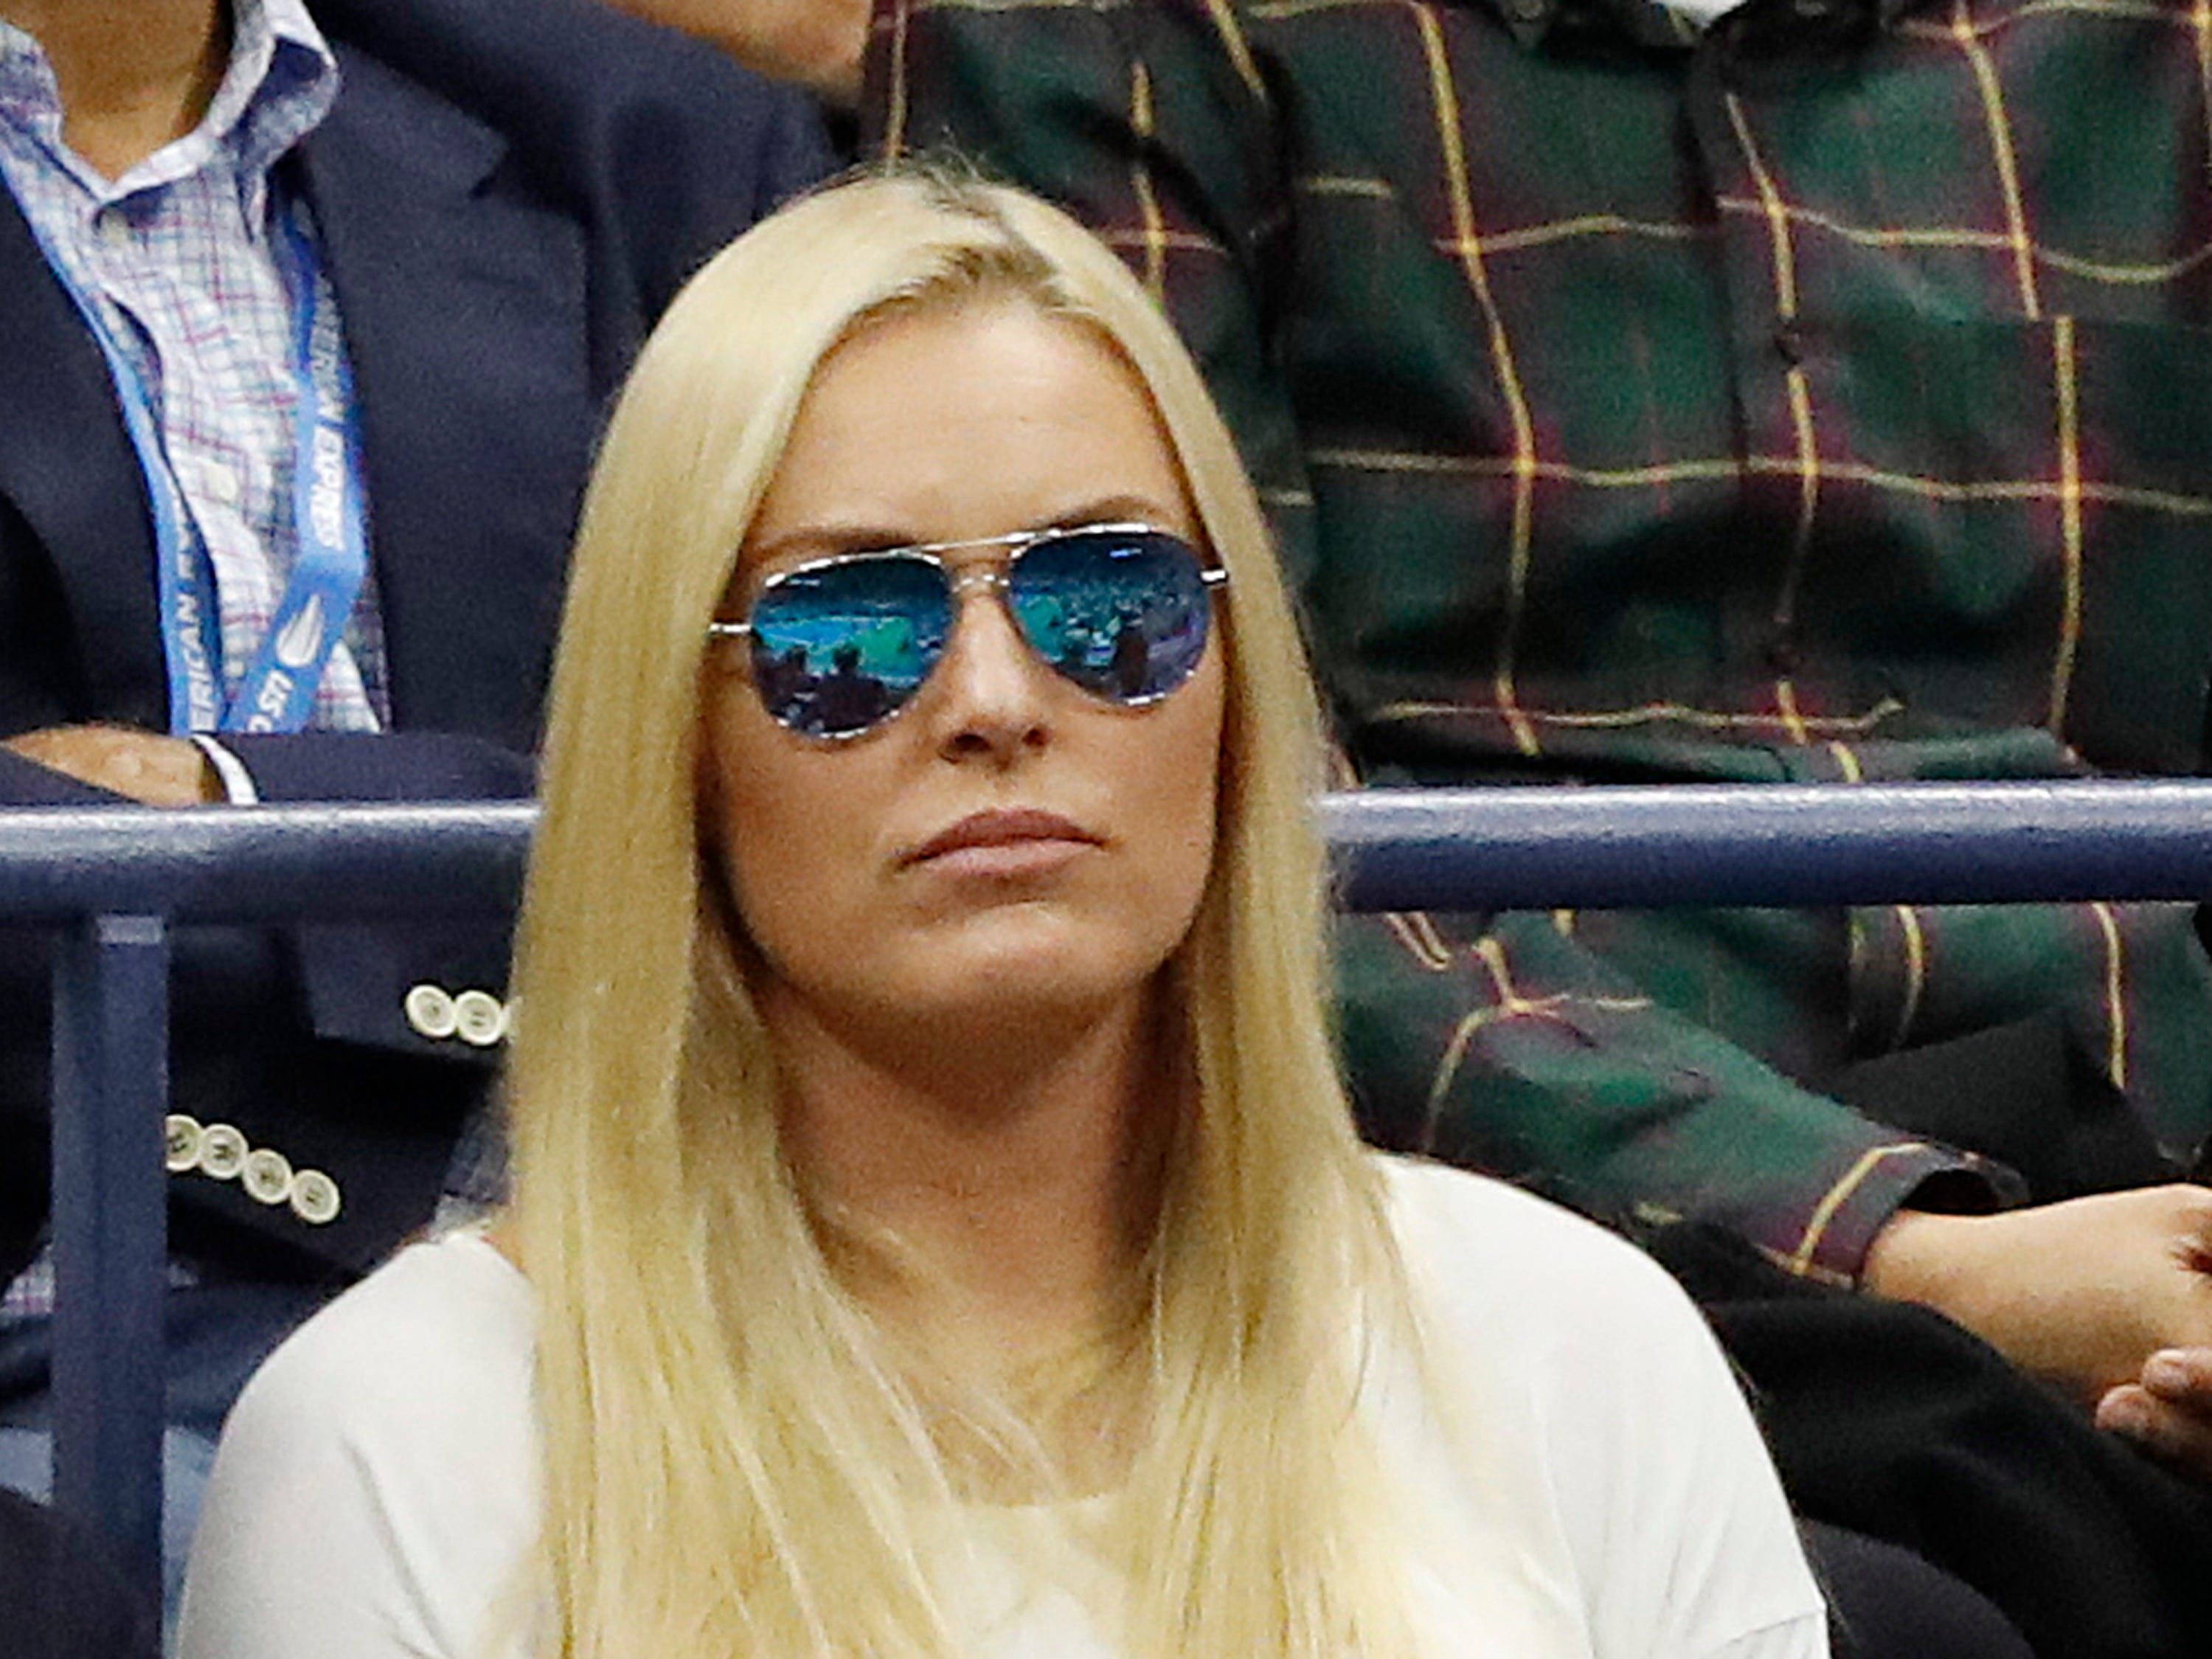 American skiier Lindsey Vonn watches the men's final between Novak Djokovic and Juan Martin del Potro.